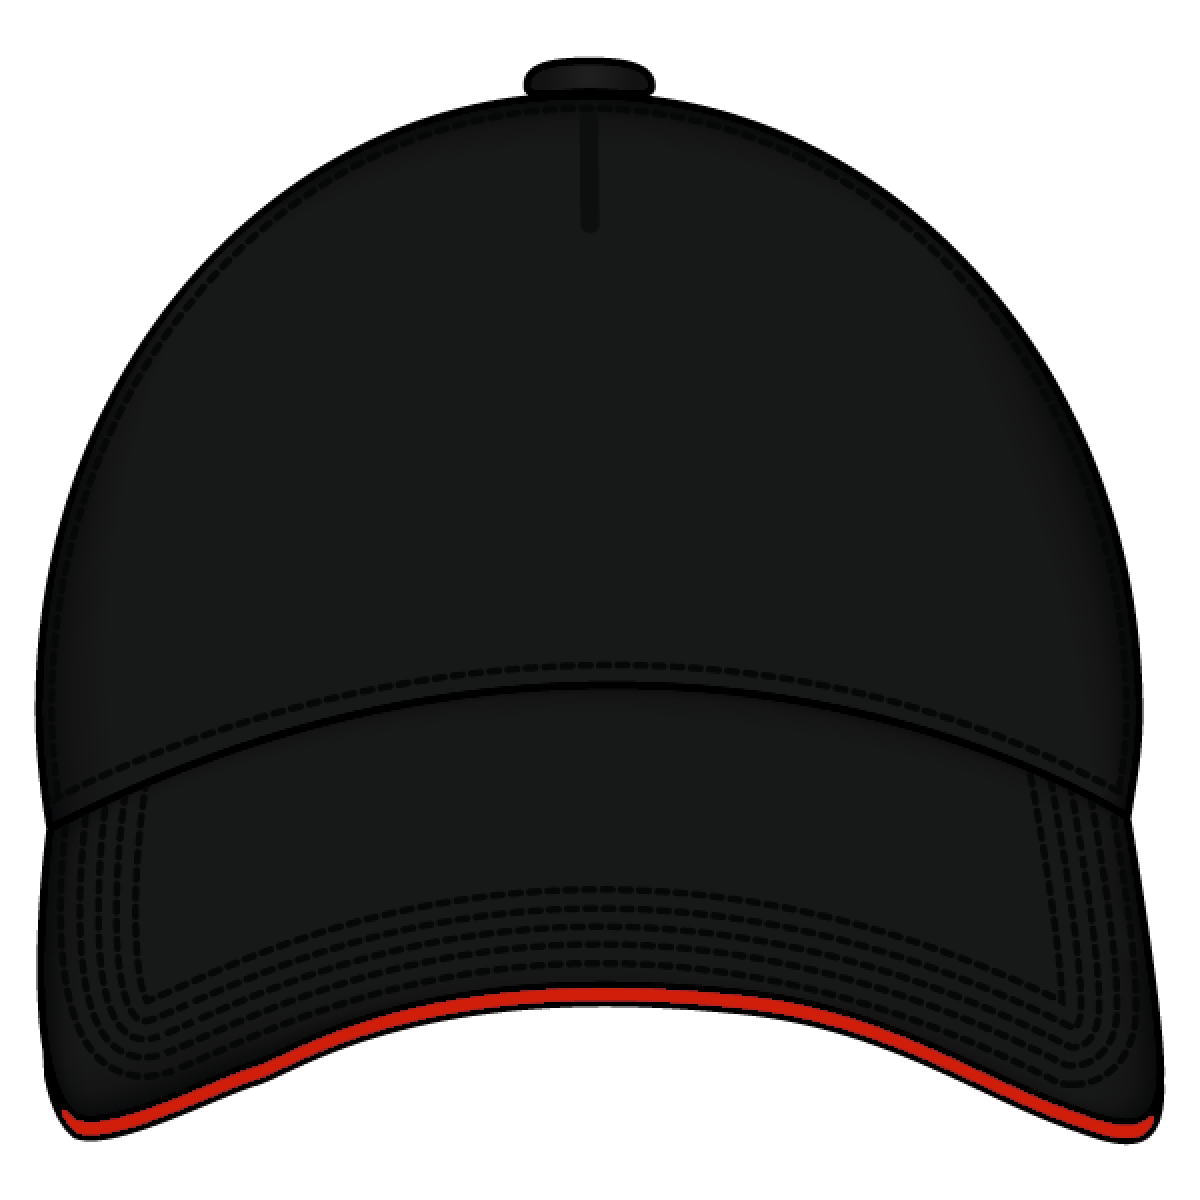 Cap clipart gangster. Download free png photo